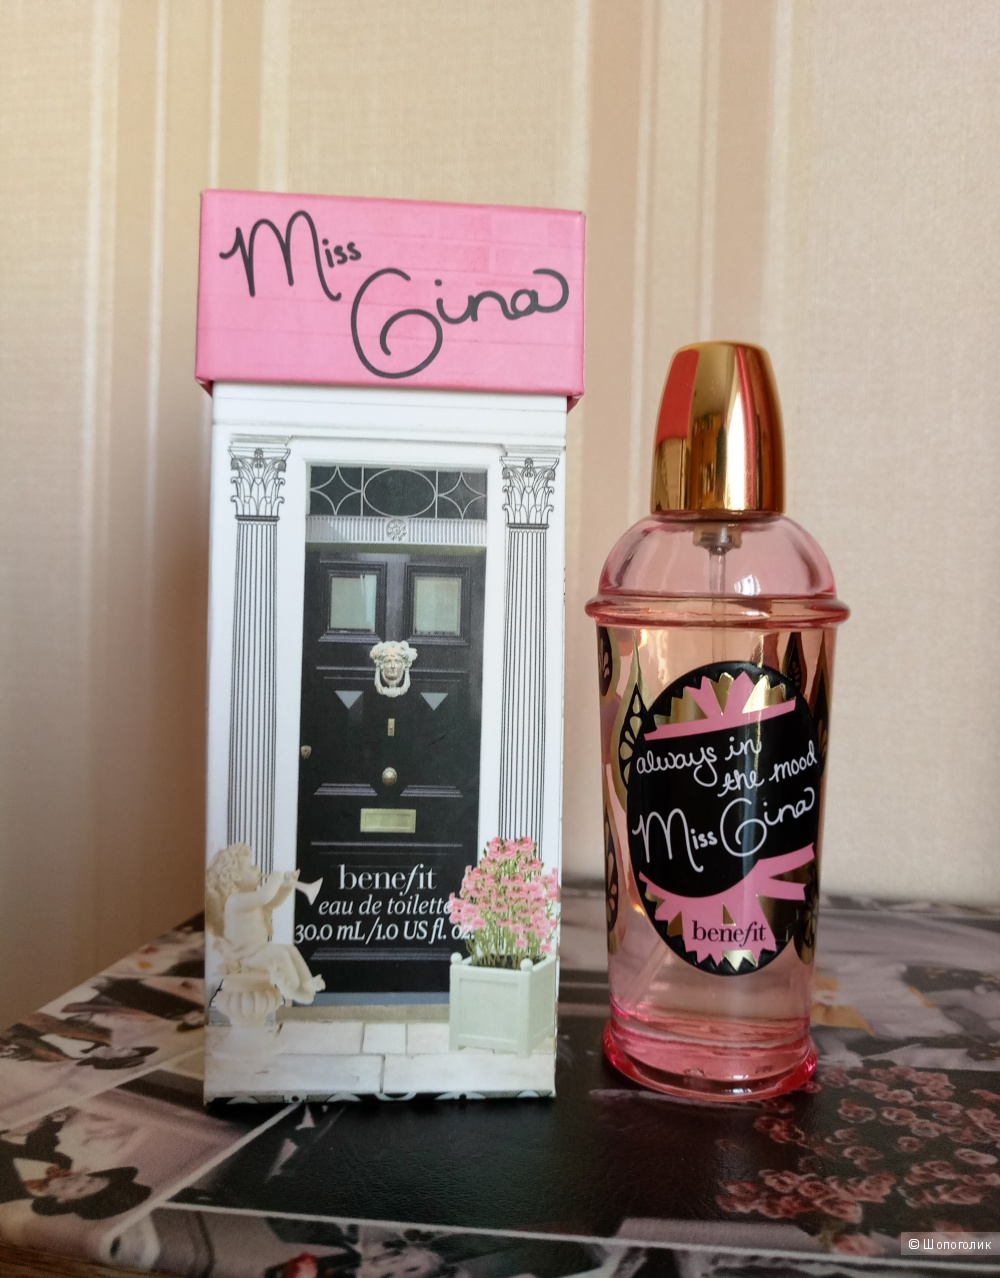 Туалетная вода Benefit Always In The Mood Miss Gina  30 мл